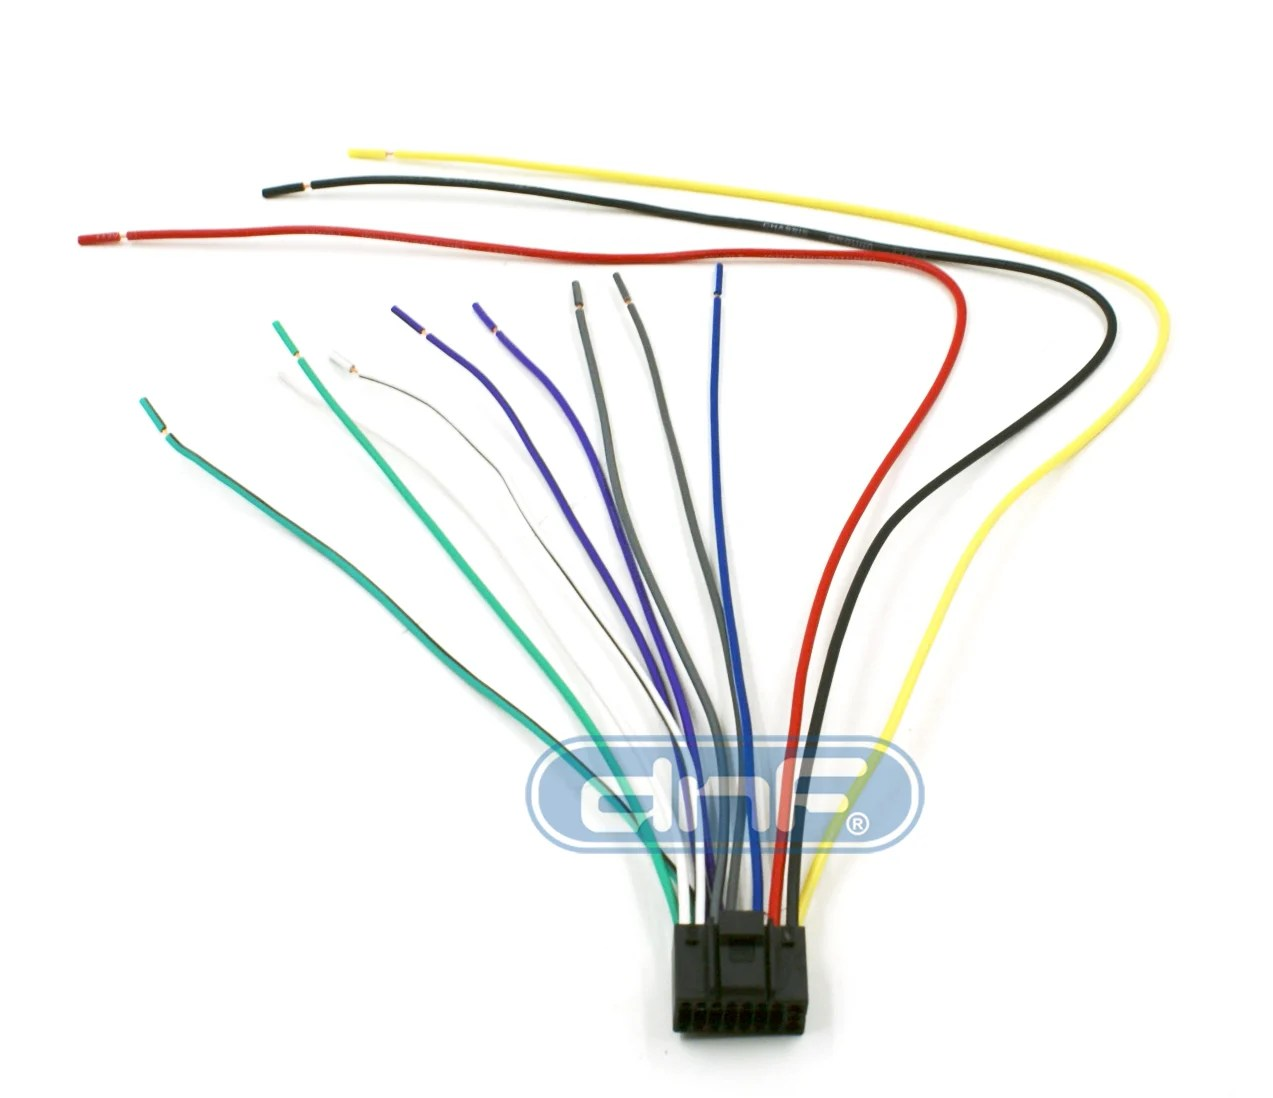 hight resolution of kenwood wiring harness 16 pin kdc 138 kdc 215s kdc 217 ships today wire harness further kenwood kdc mp332 wiring diagram besides kenwood